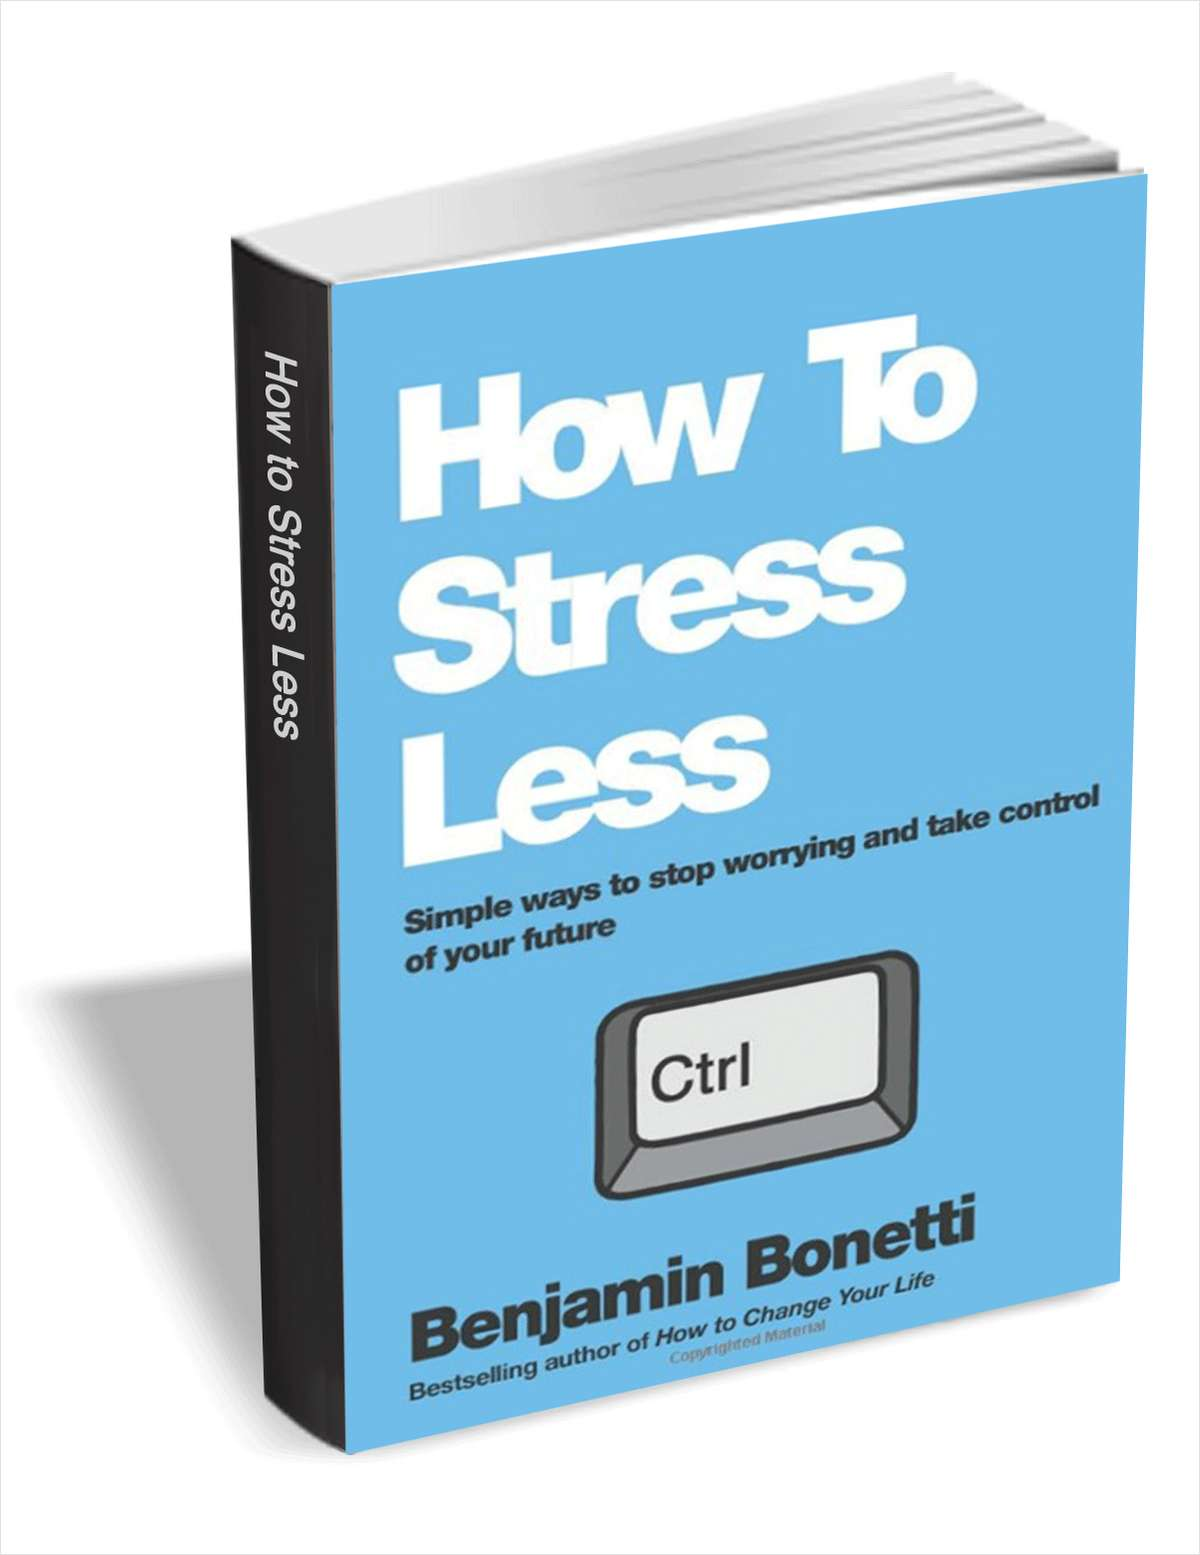 How To Stress Less - Simple Ways to Stop Worrying and Take Control of Your Future ($18 Value) FREE For a Limited Time